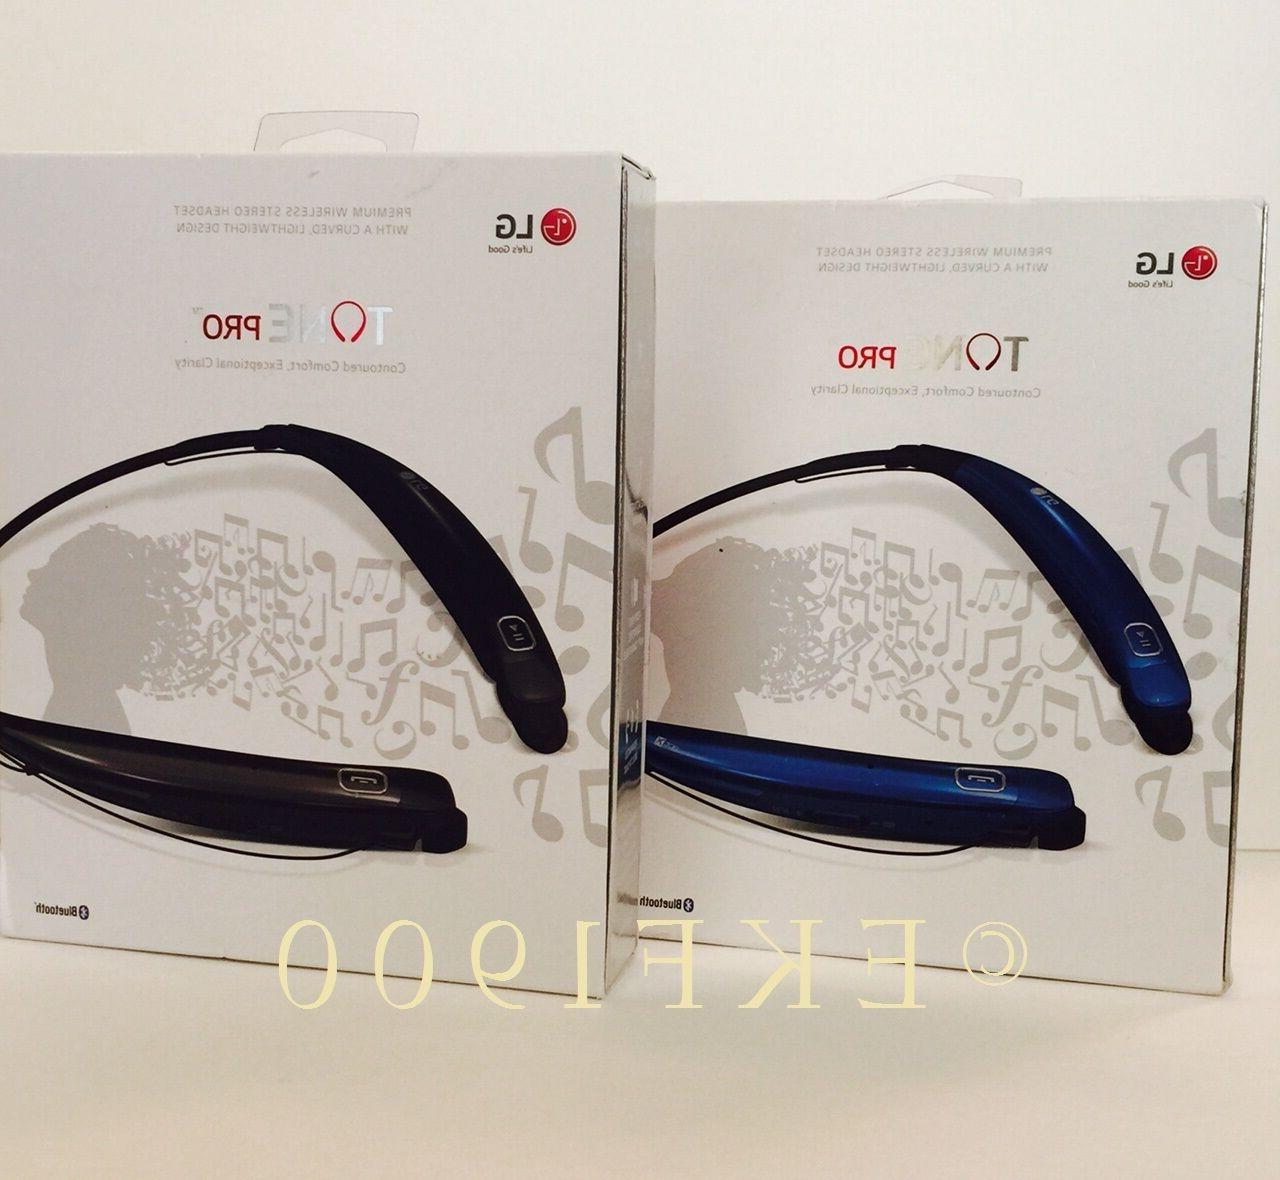 LG Electronics Pro HBS-770 Headphones - Packaging - Black